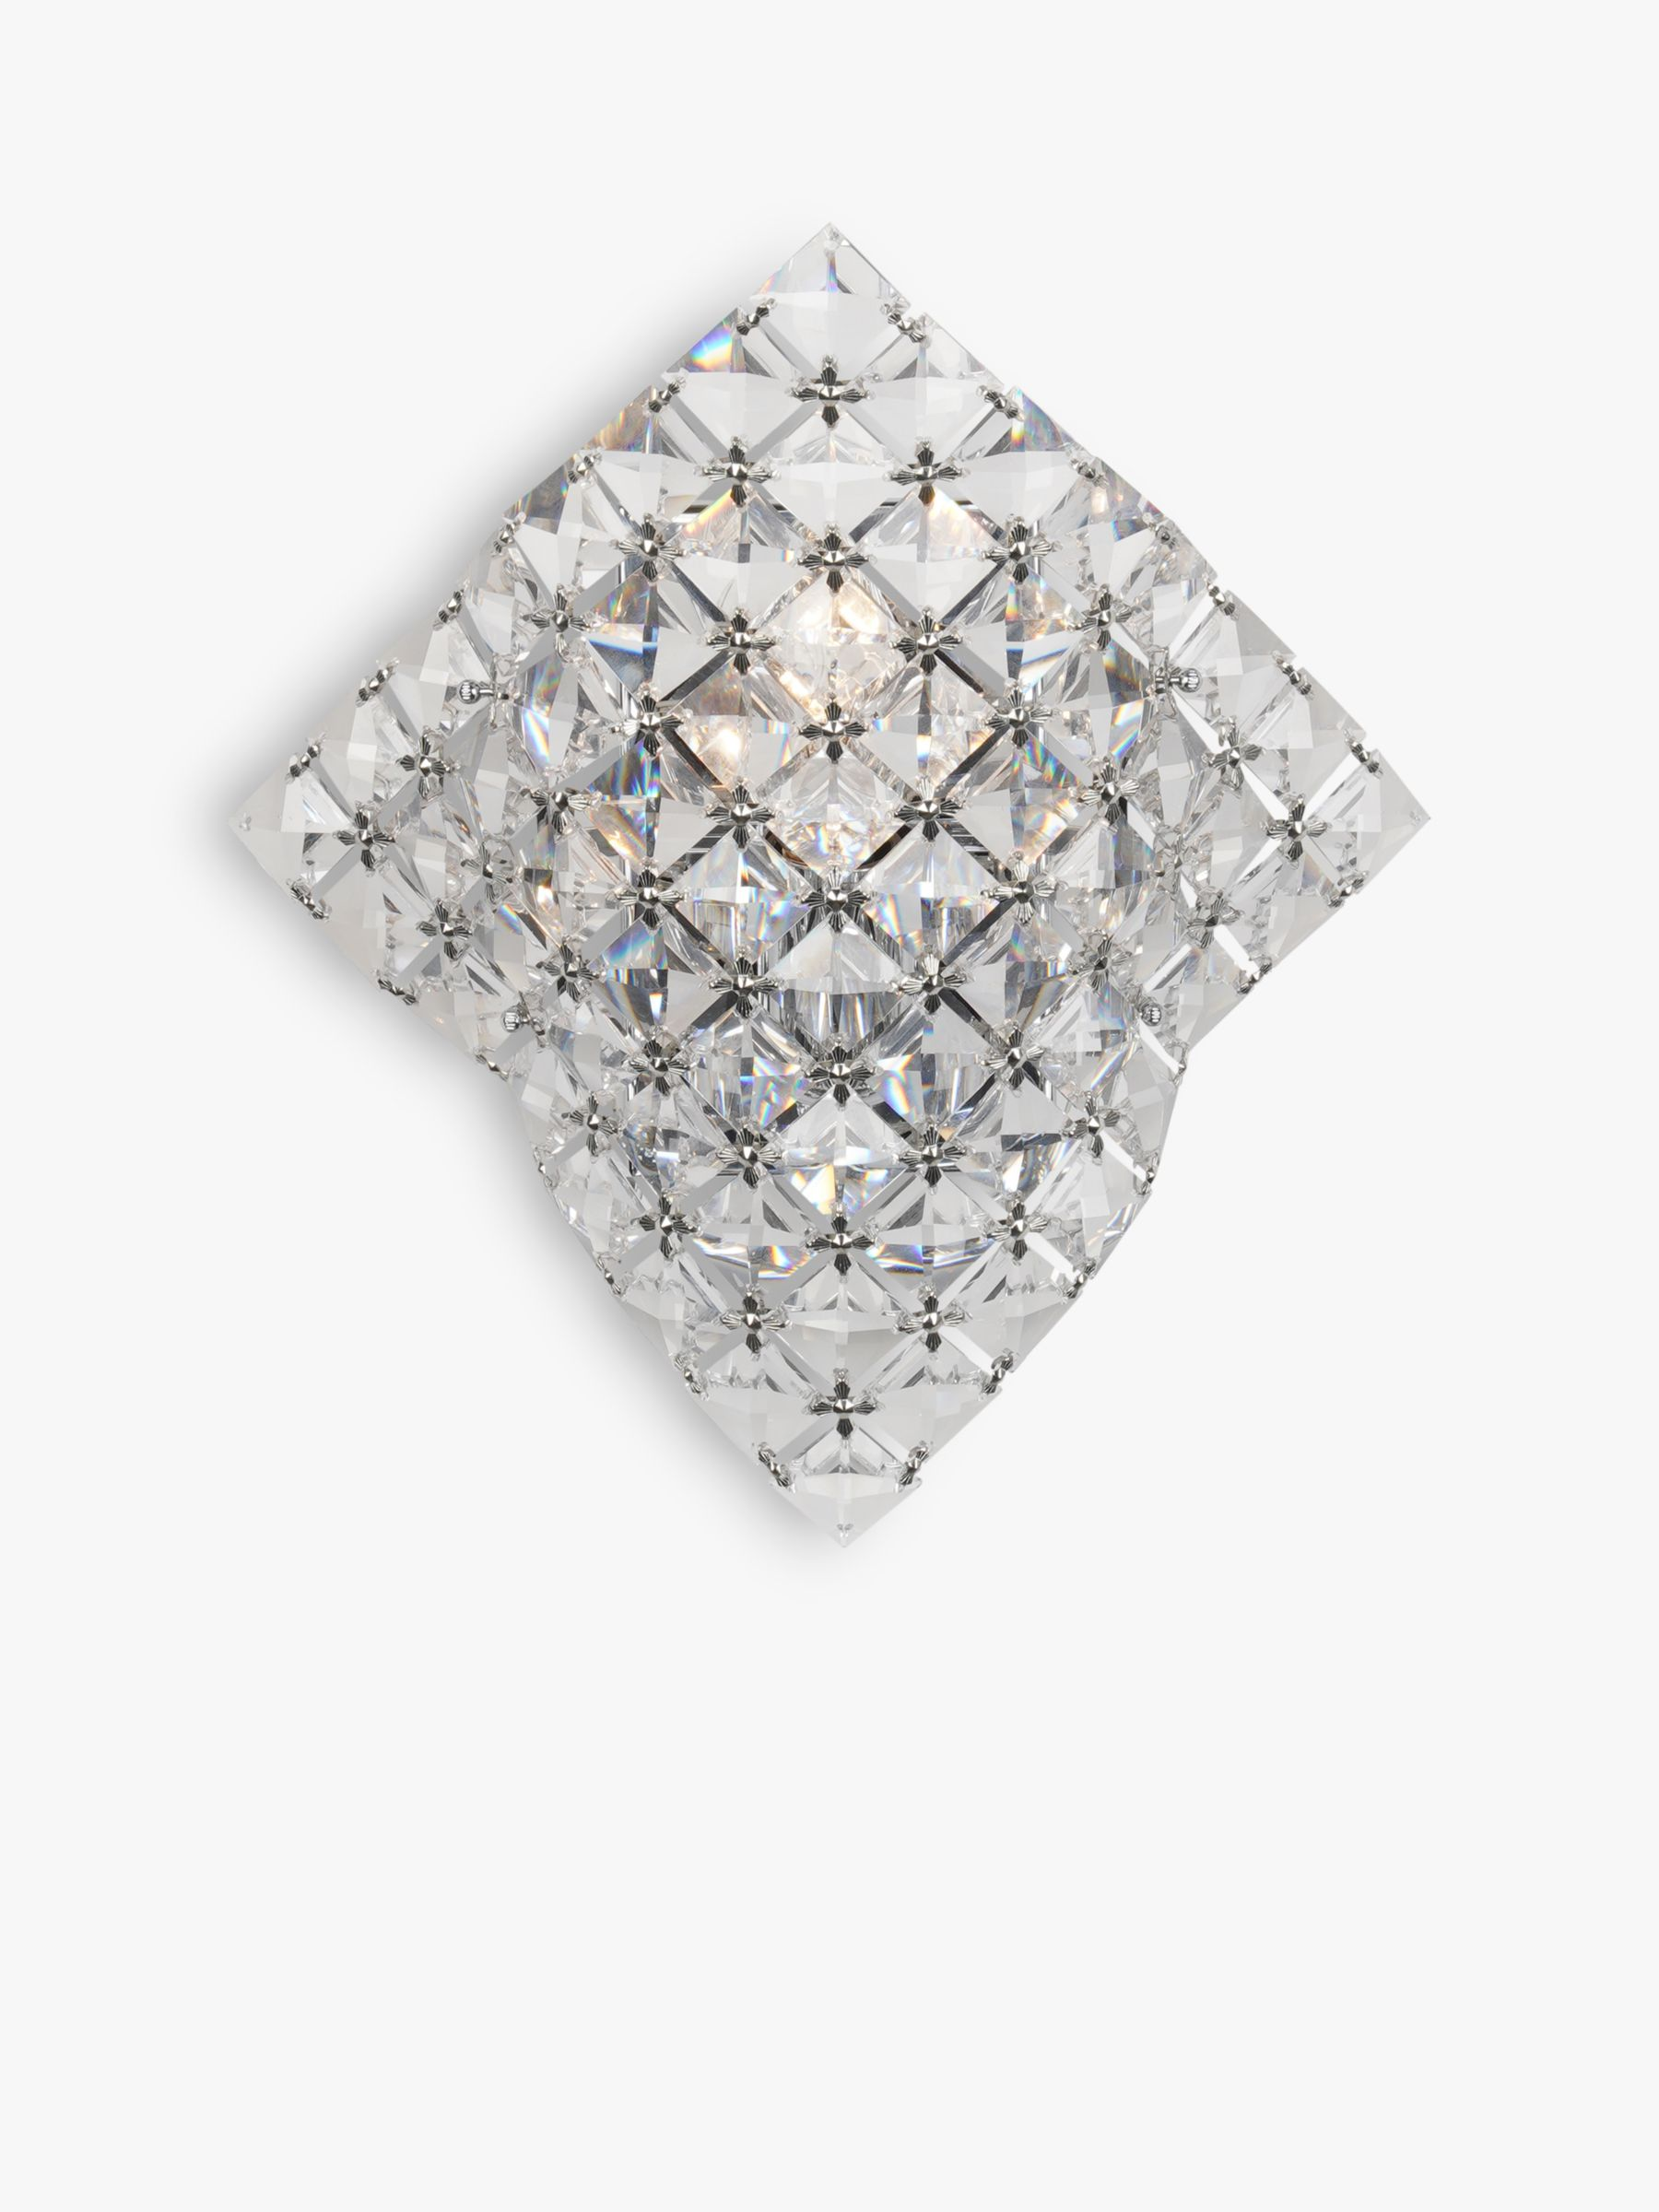 Impex Impex Diamond Cube Crystal Wall Light, Clear/Chrome